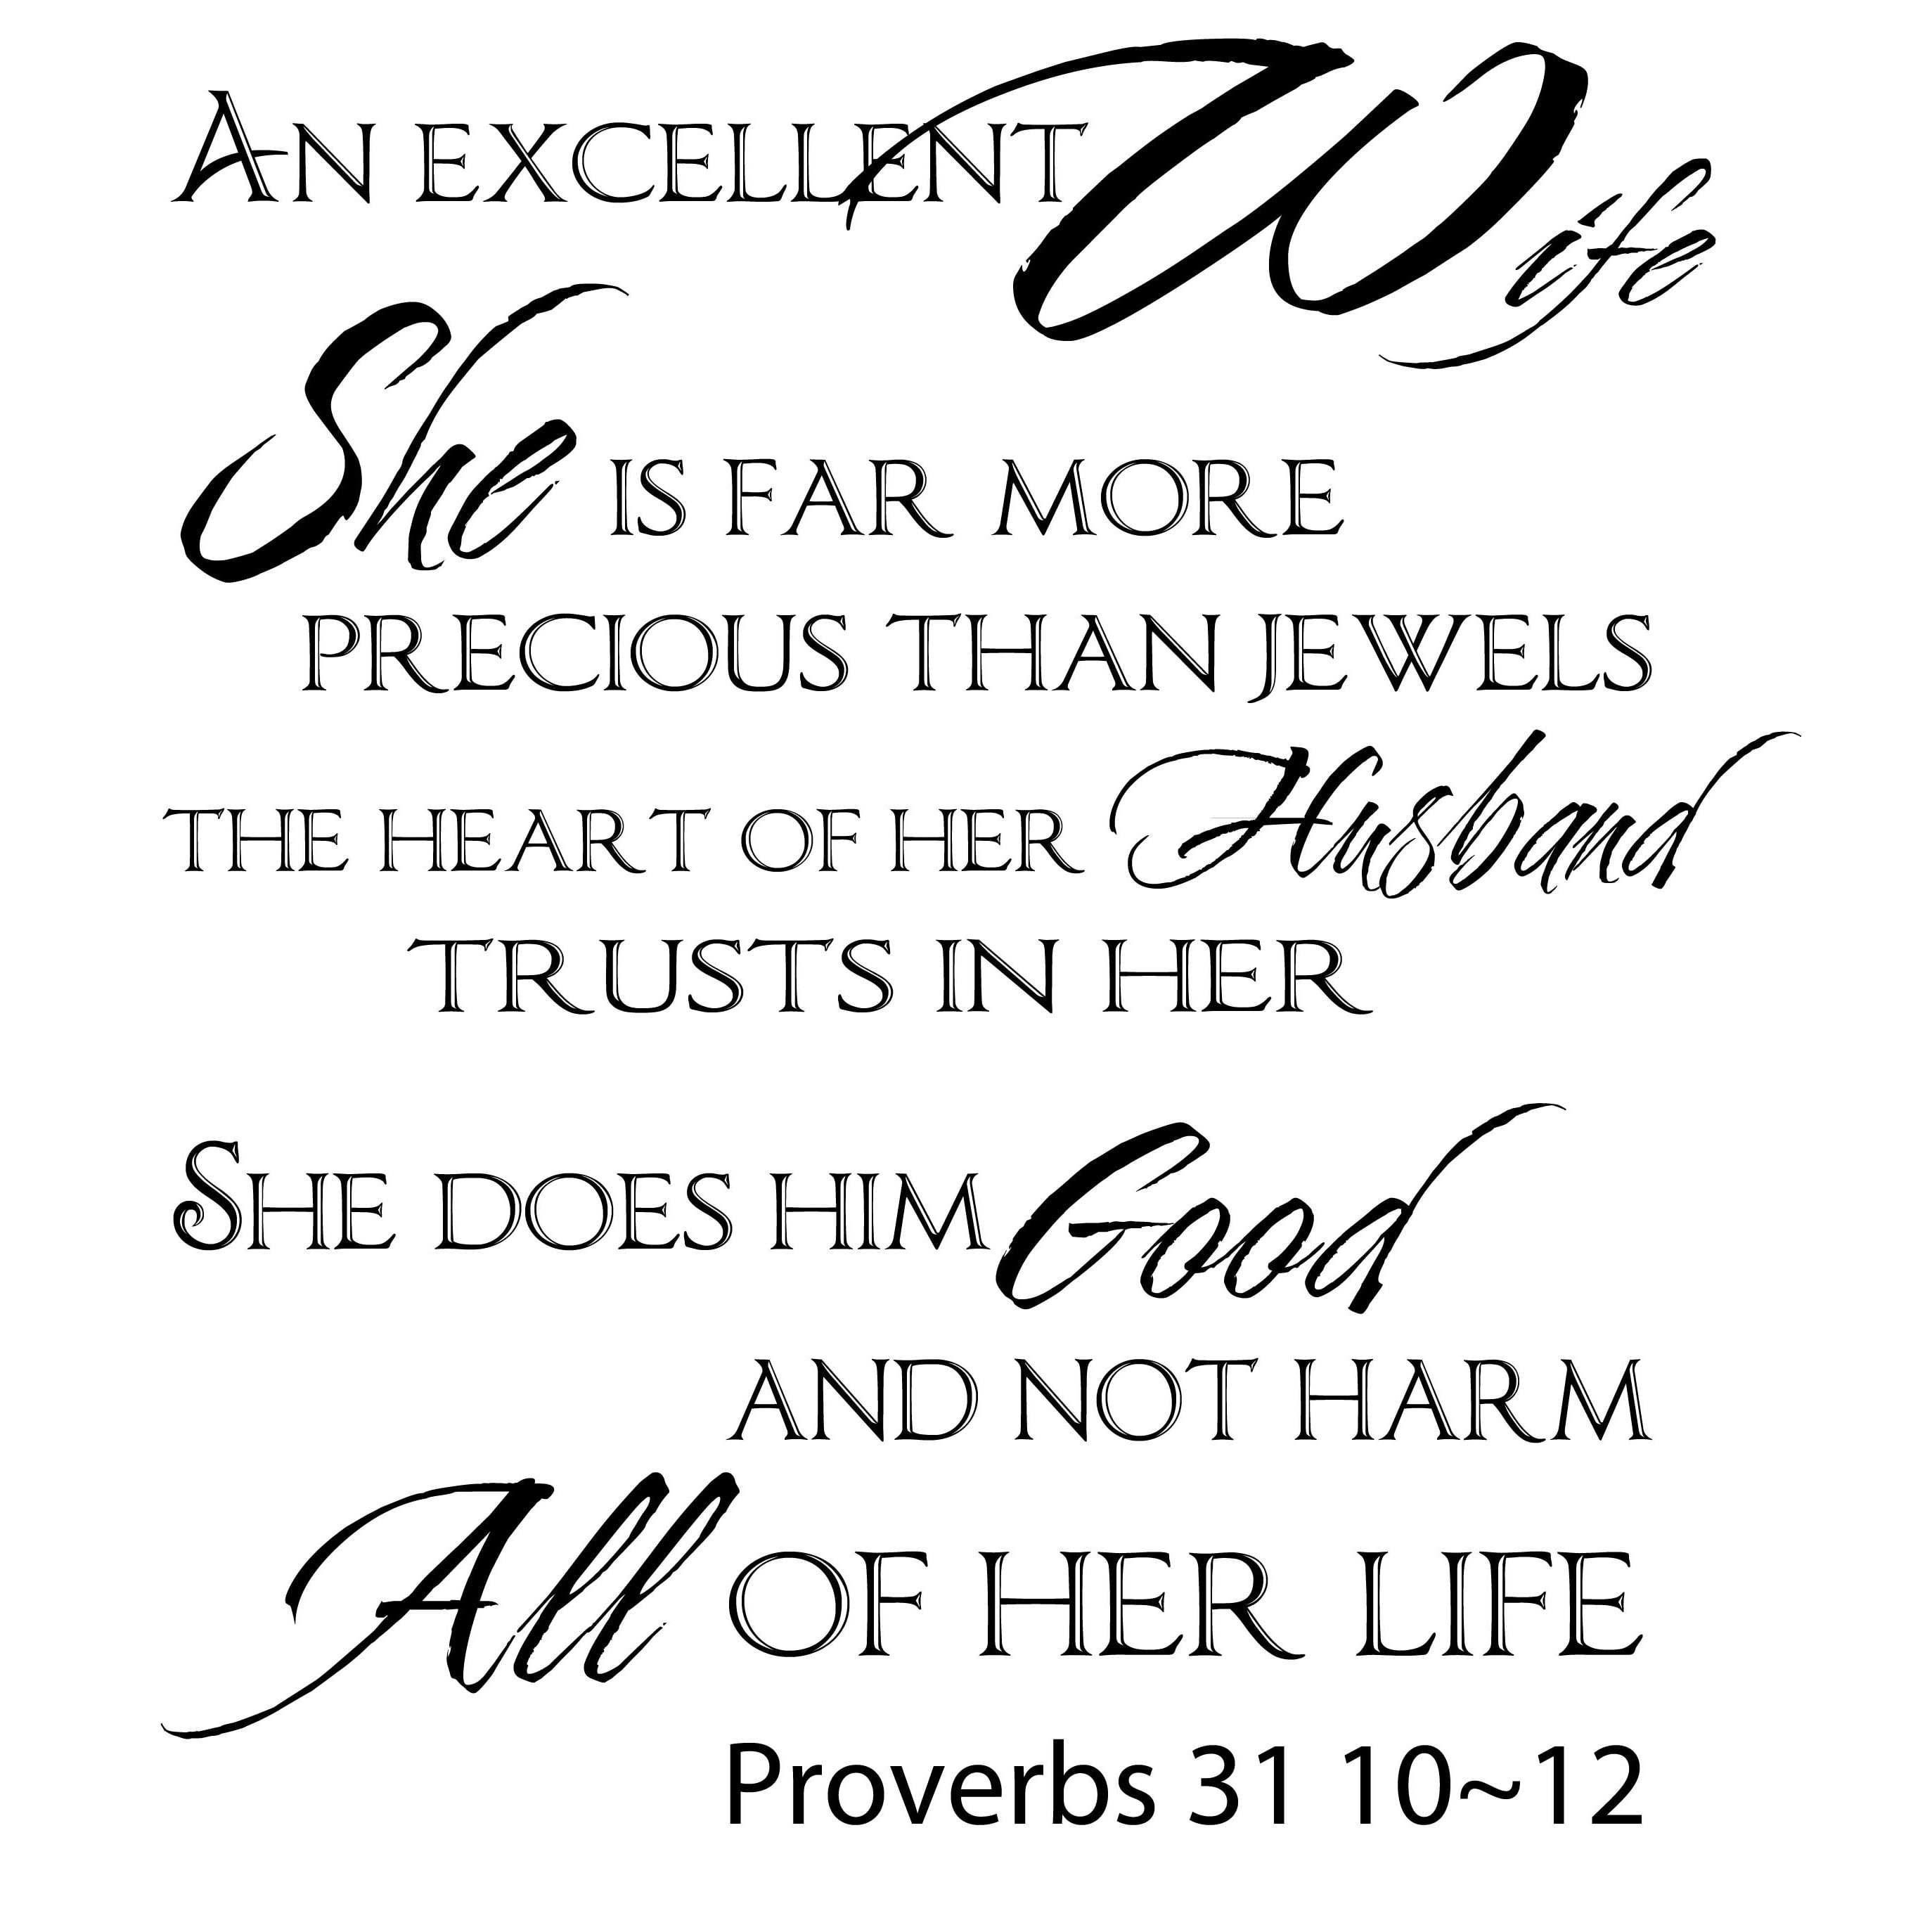 Everything Vinyl Decor Proverbs 31 Vinyl Wall Art